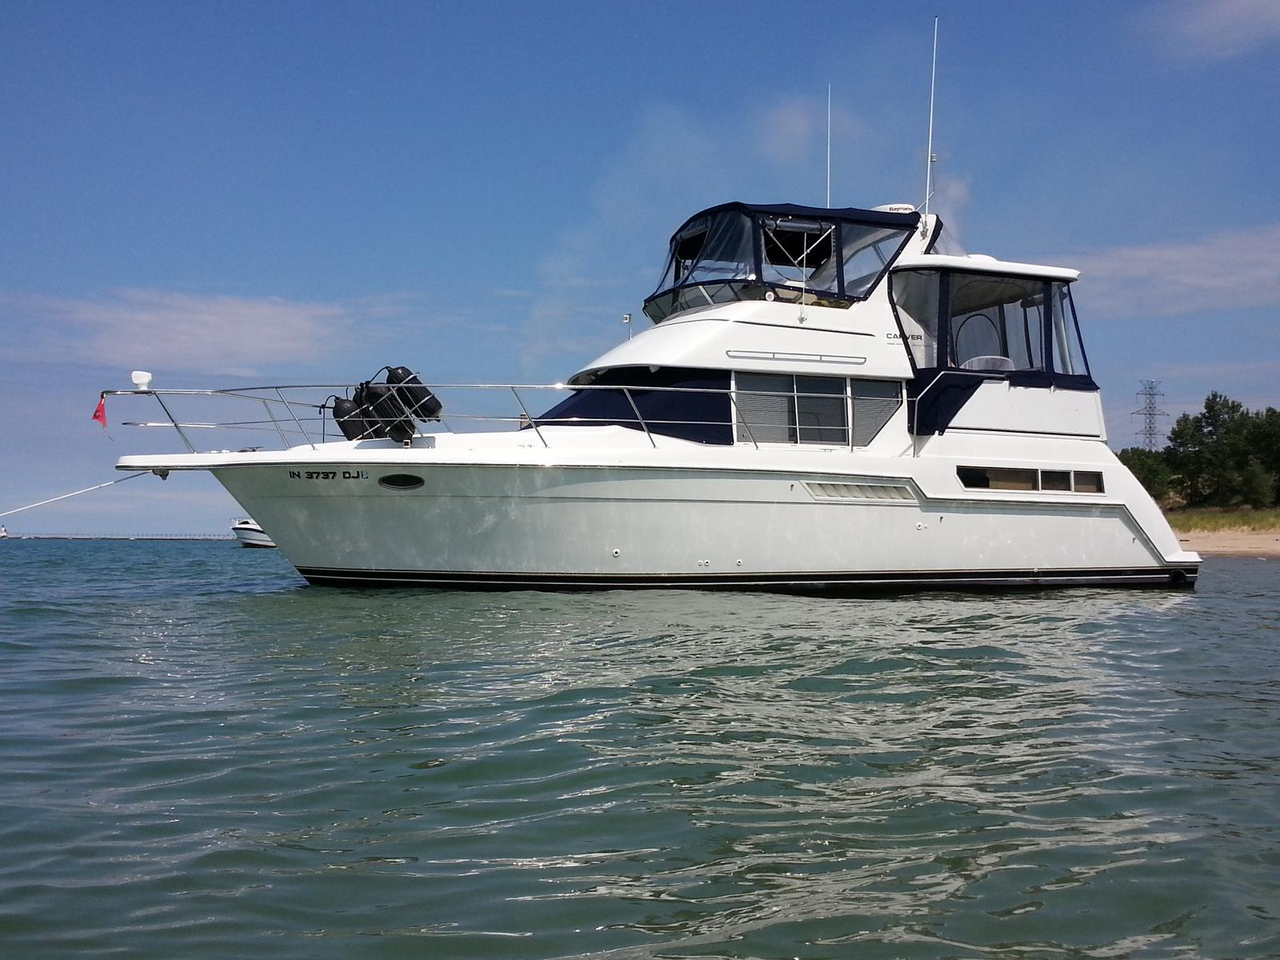 1998 Used Carver 355 Aft Cabin Motor Yacht Cruiser Boat